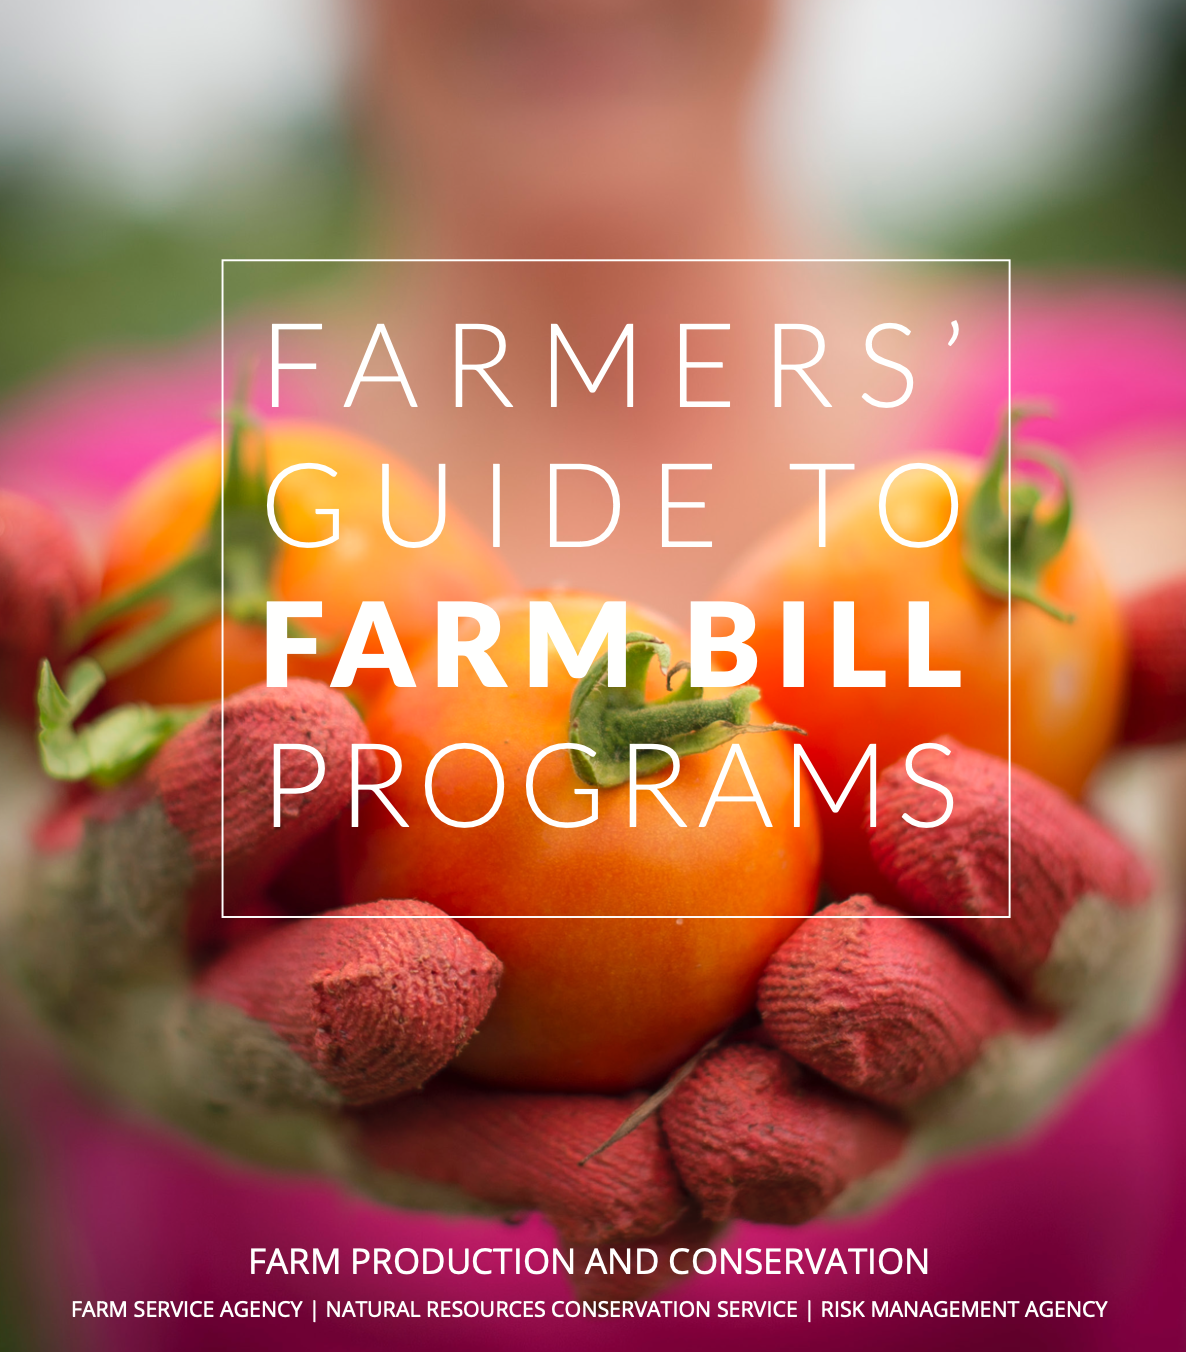 Farmers Guide to Farm Bill Programs